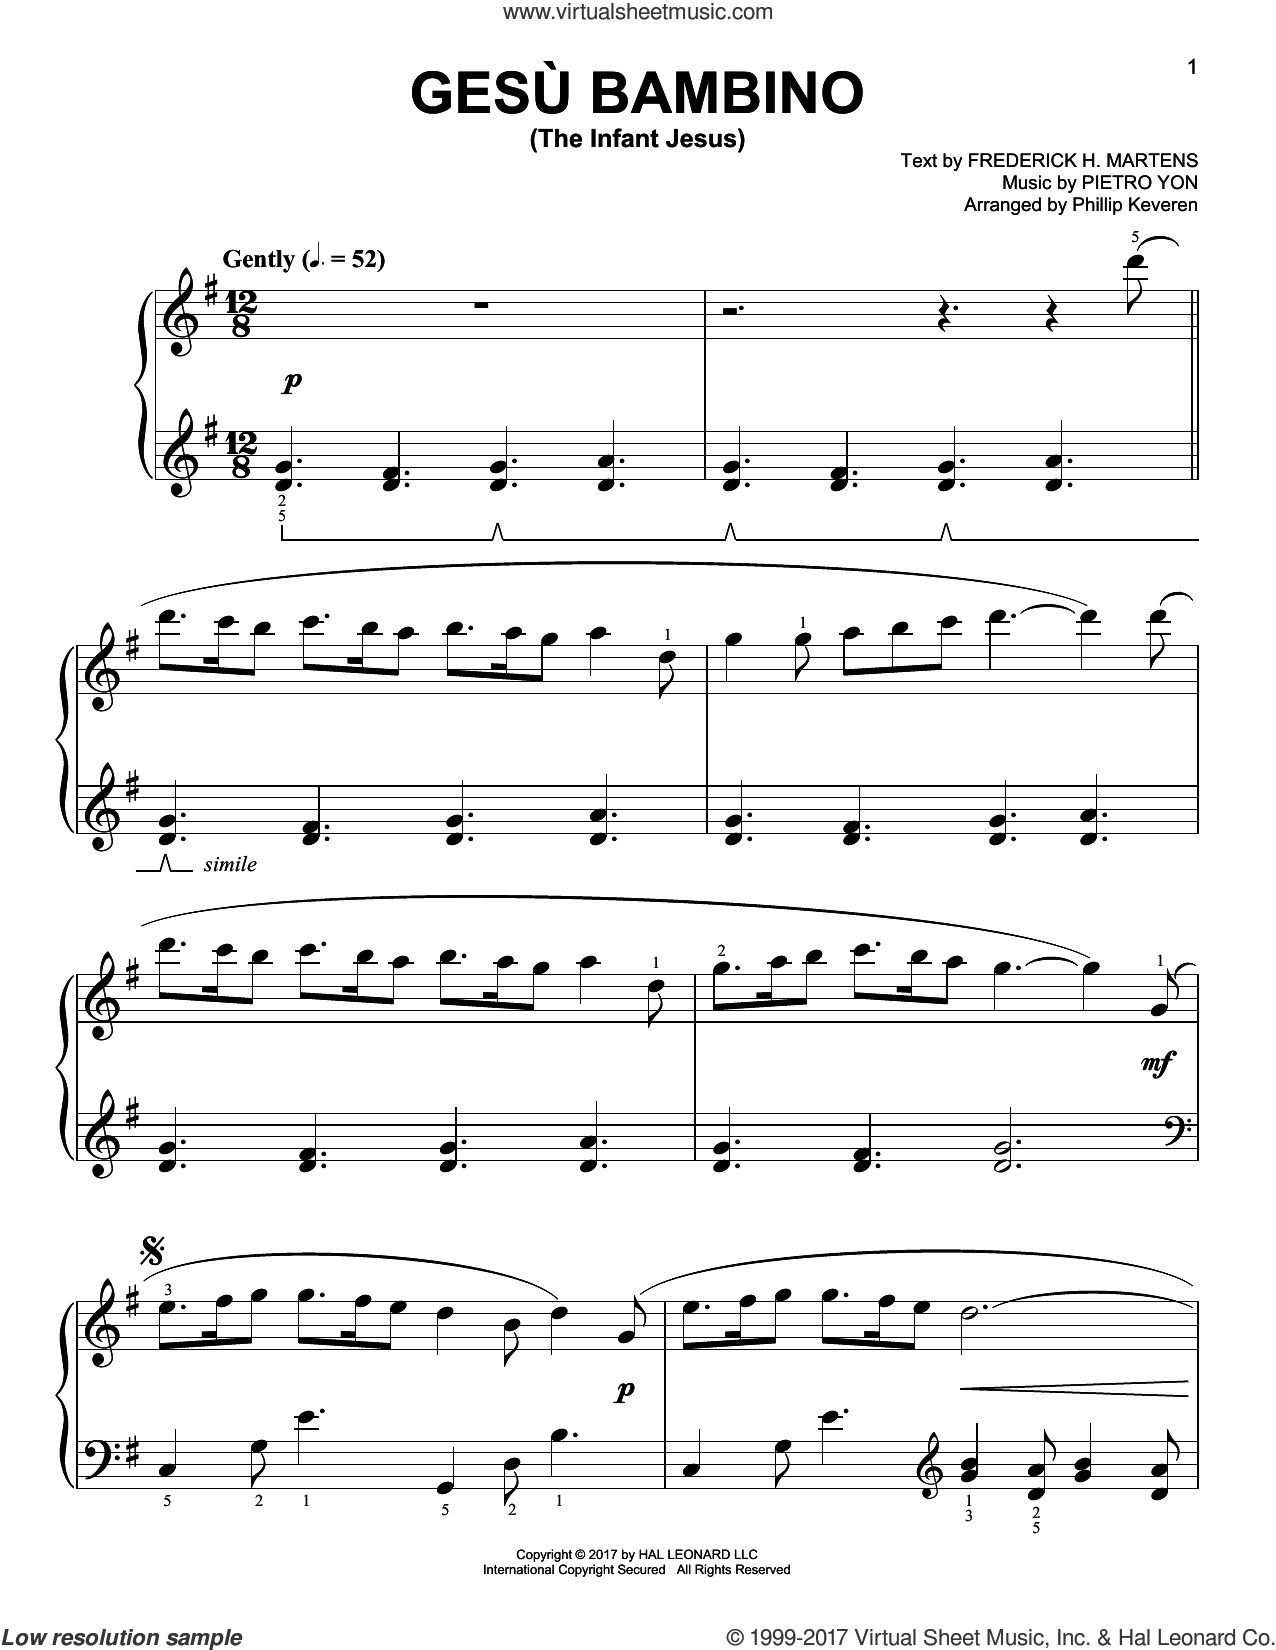 Gesu Bambino (The Infant Jesus) sheet music for piano solo by Frederick H. Martens, Phillip Keveren and Pietro Yon. Score Image Preview.